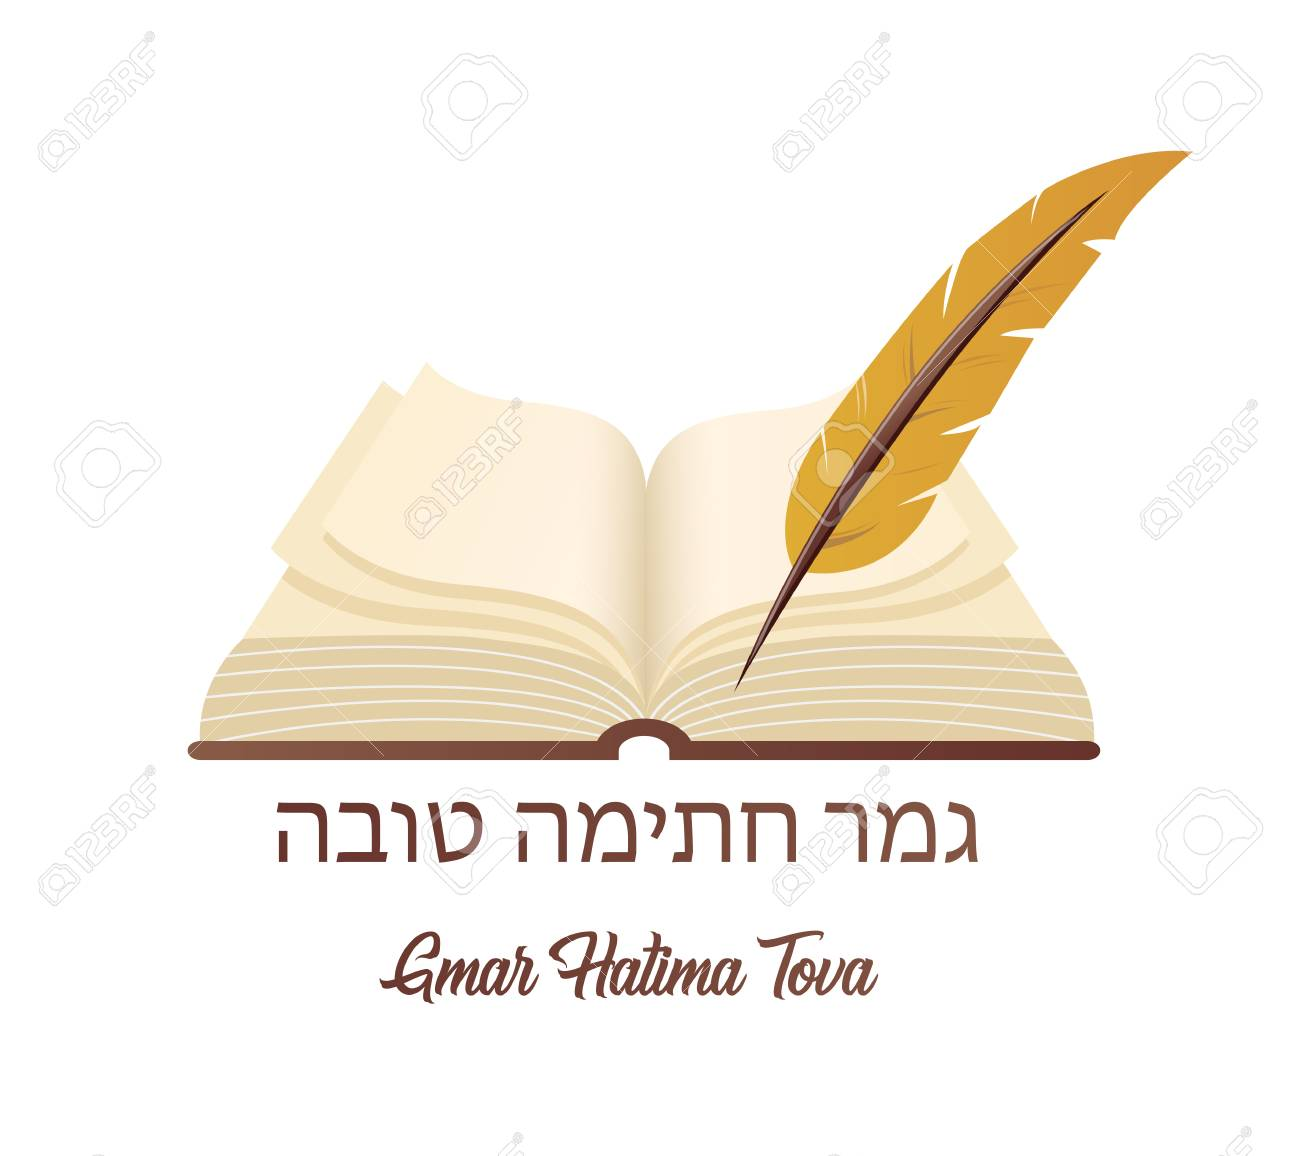 May You Be Inscribed In The Book Of Life For Good in Hebrew.